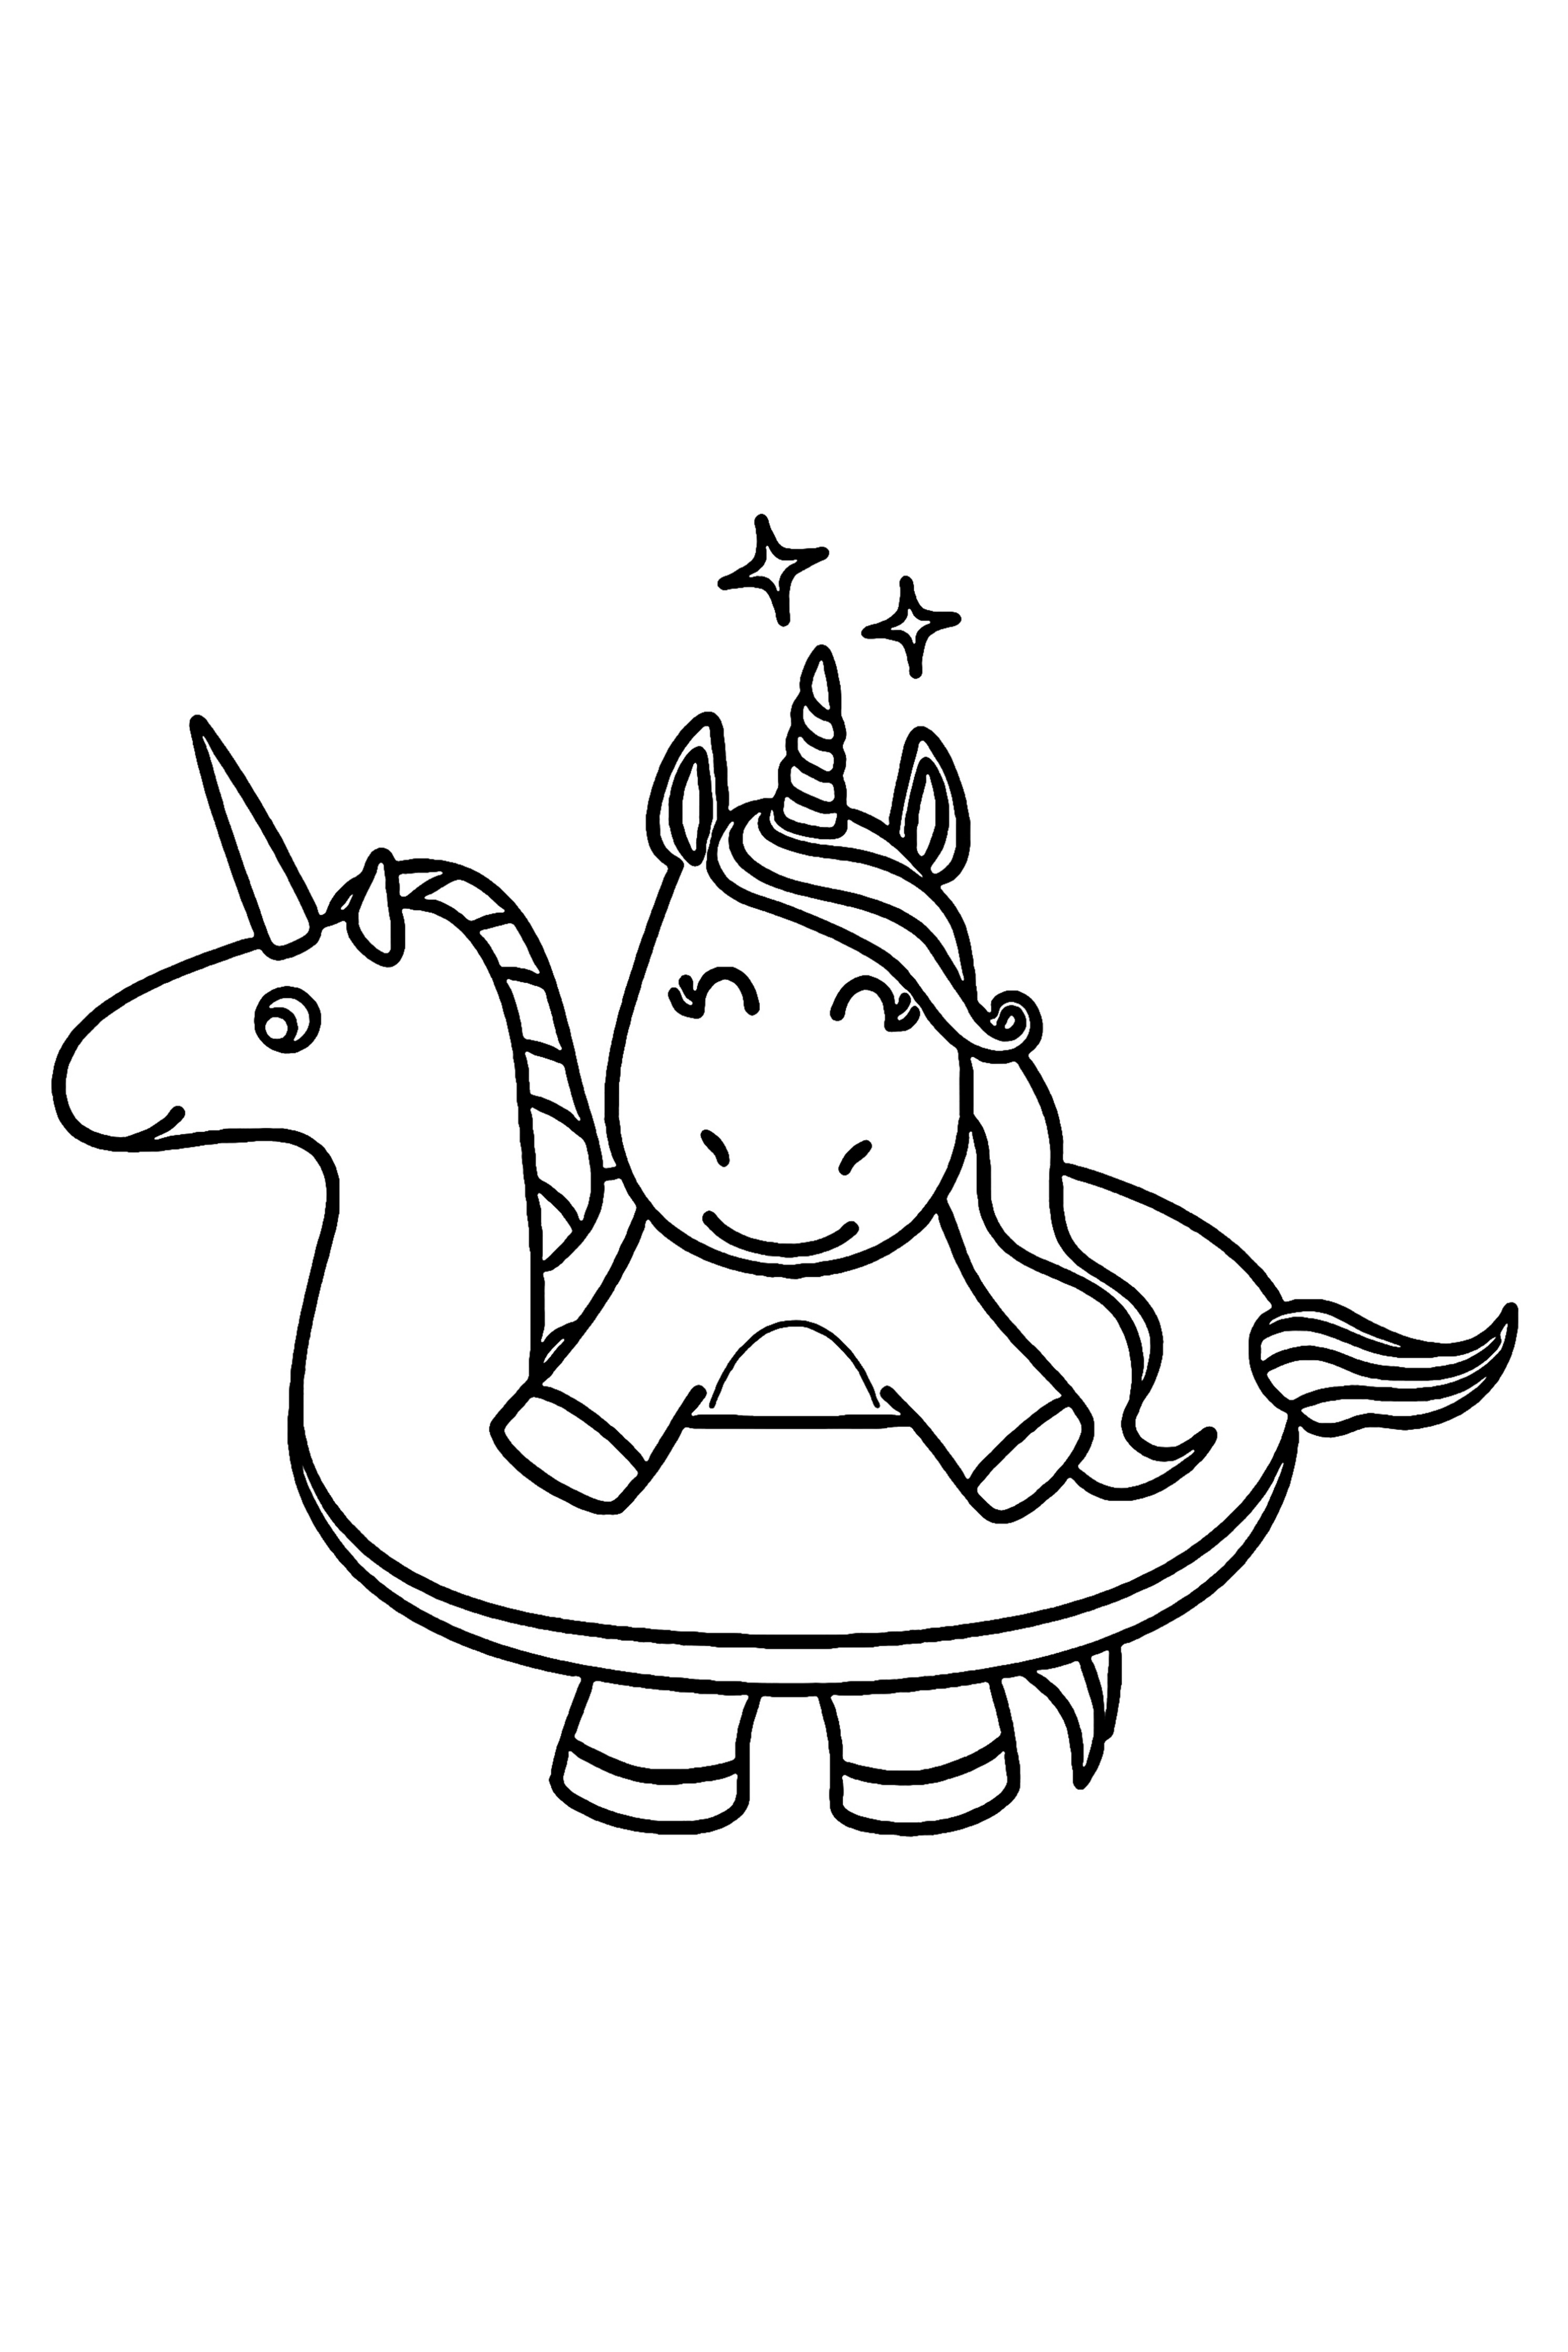 100 Unicorn Coloring Pages For Kids Unicorn Coloring Pages Mermaid Coloring Book Mermaid Coloring Pages [ 4500 x 3000 Pixel ]